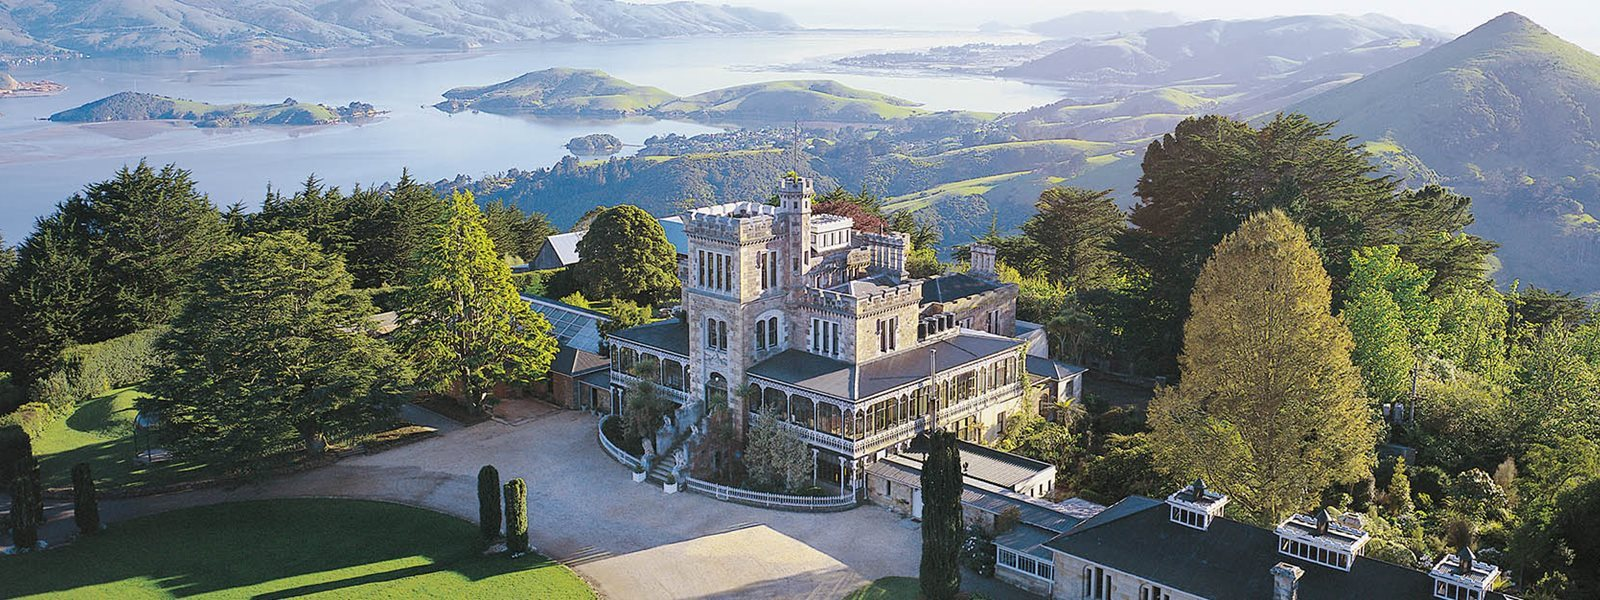 Larnach Castle Host Card terms